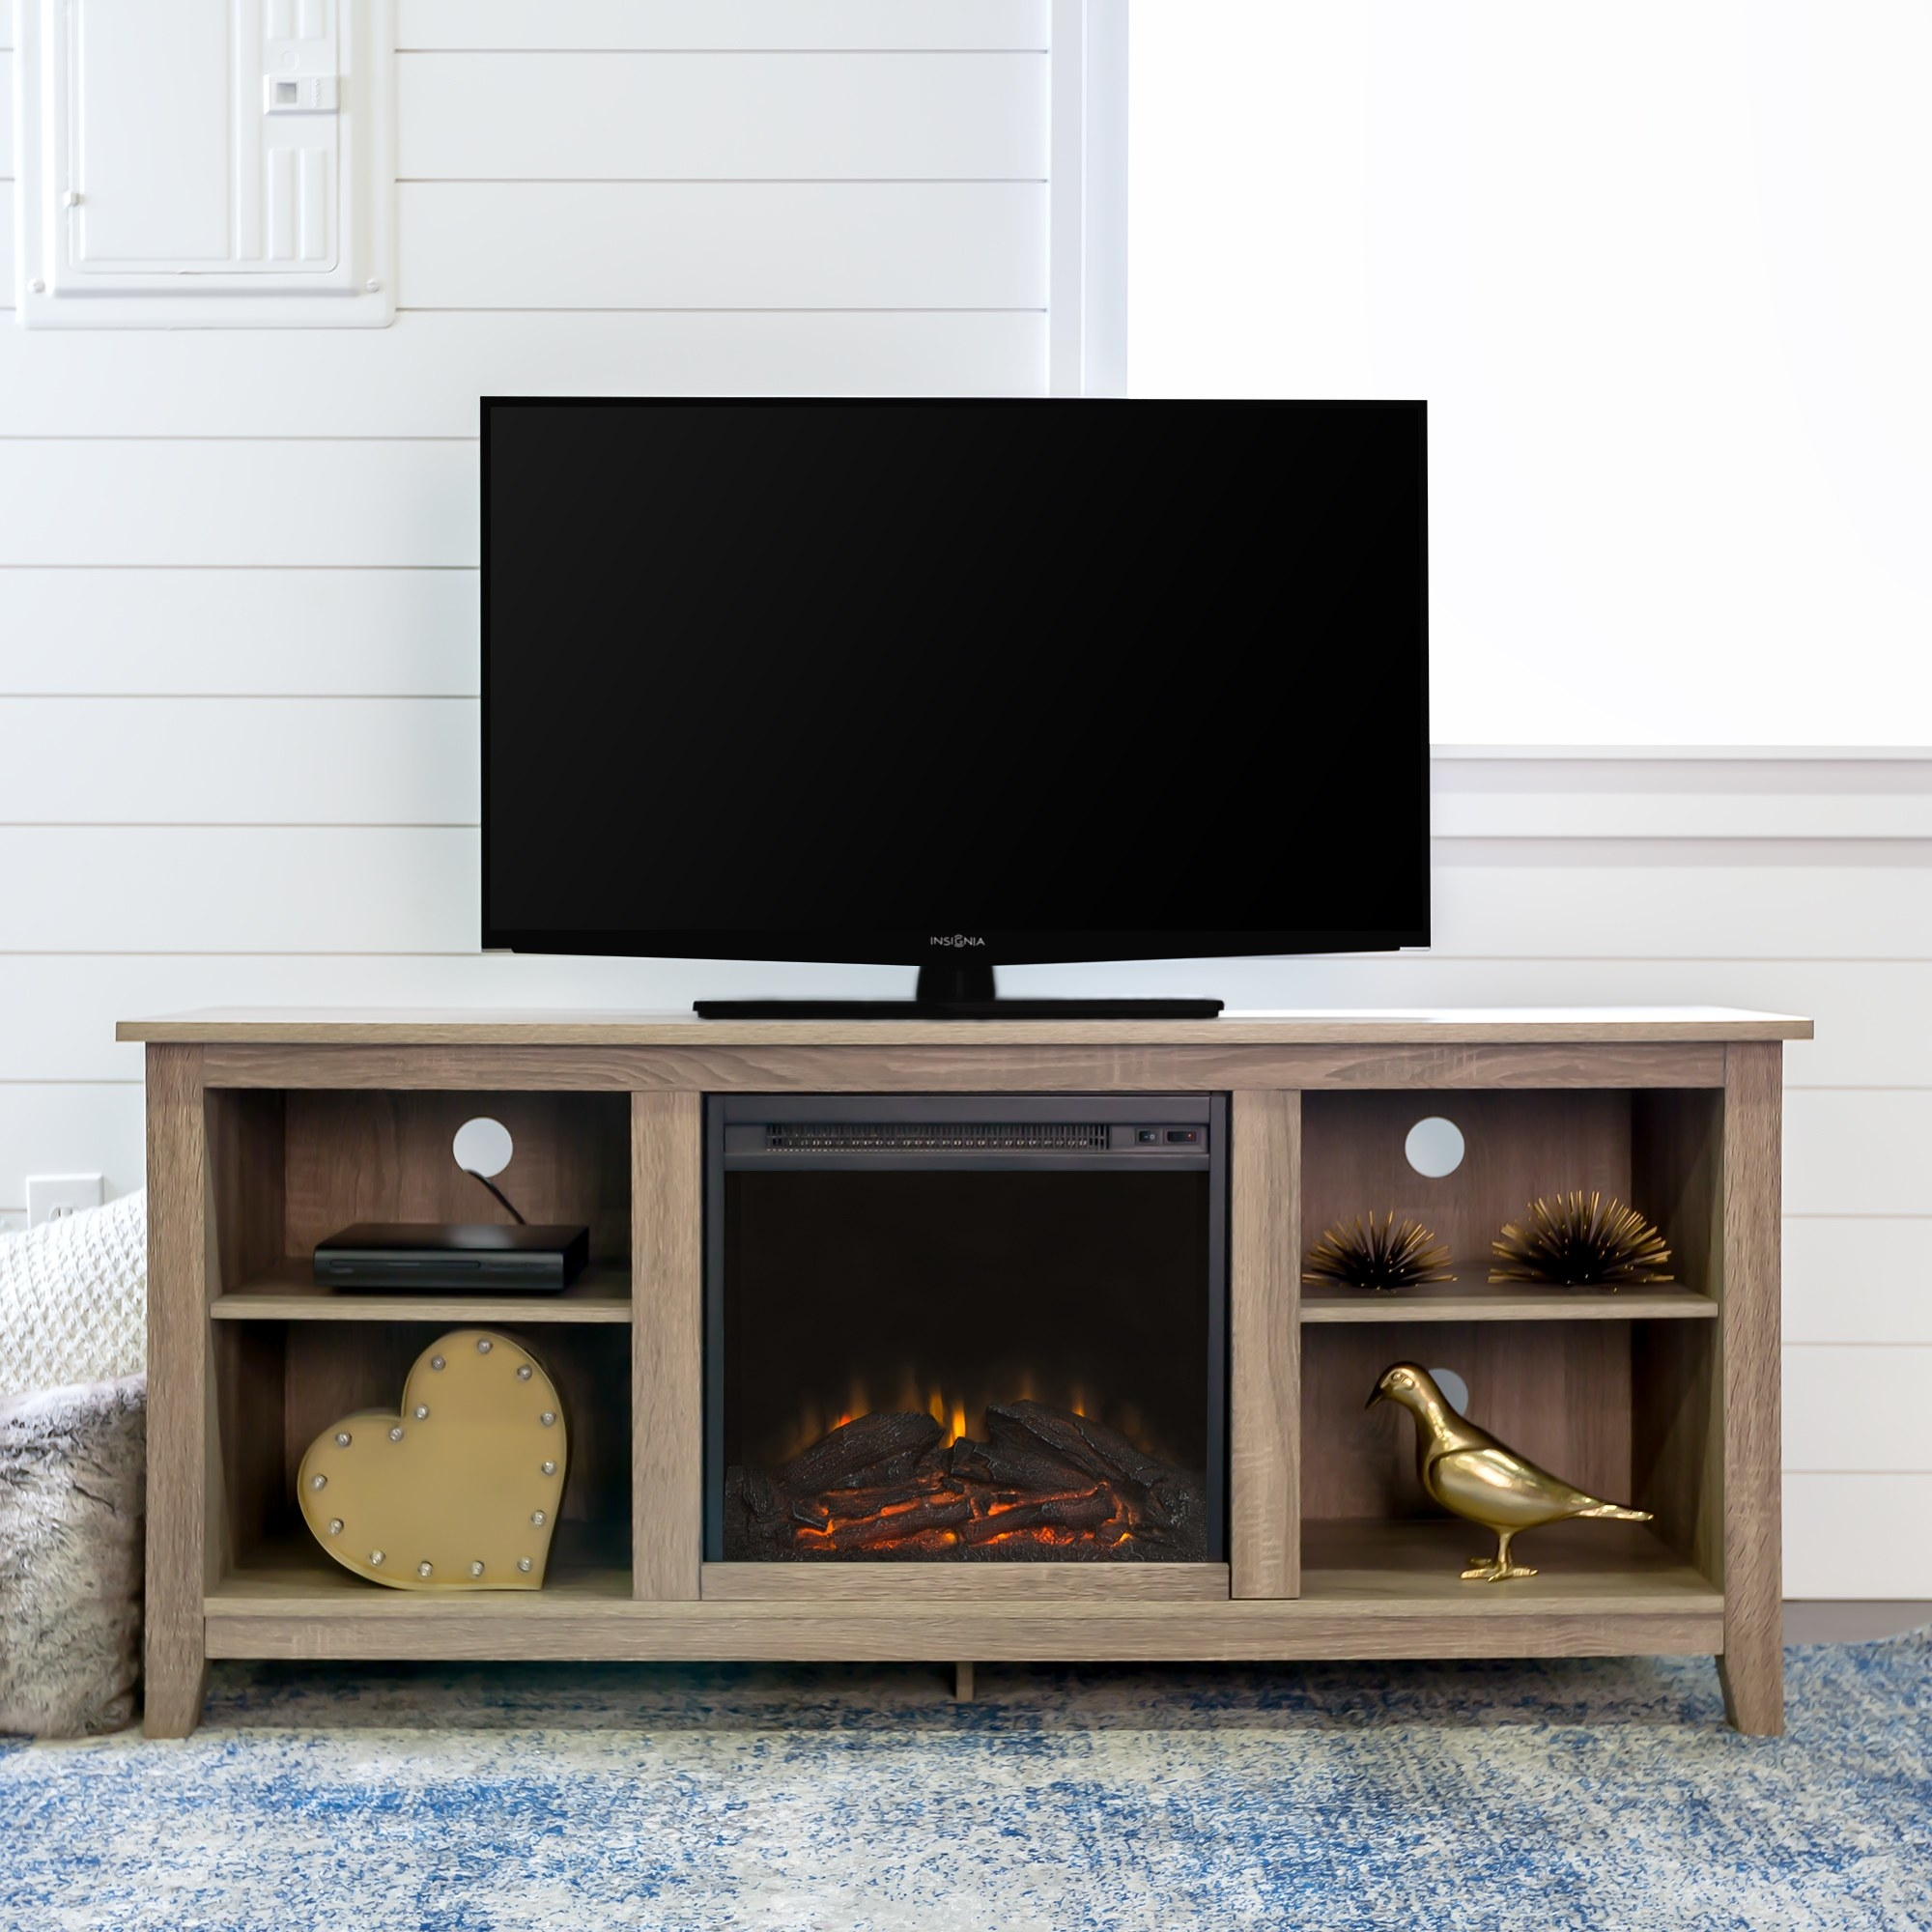 The TV stand with an electric fireplace in the middle and two shelves on either side